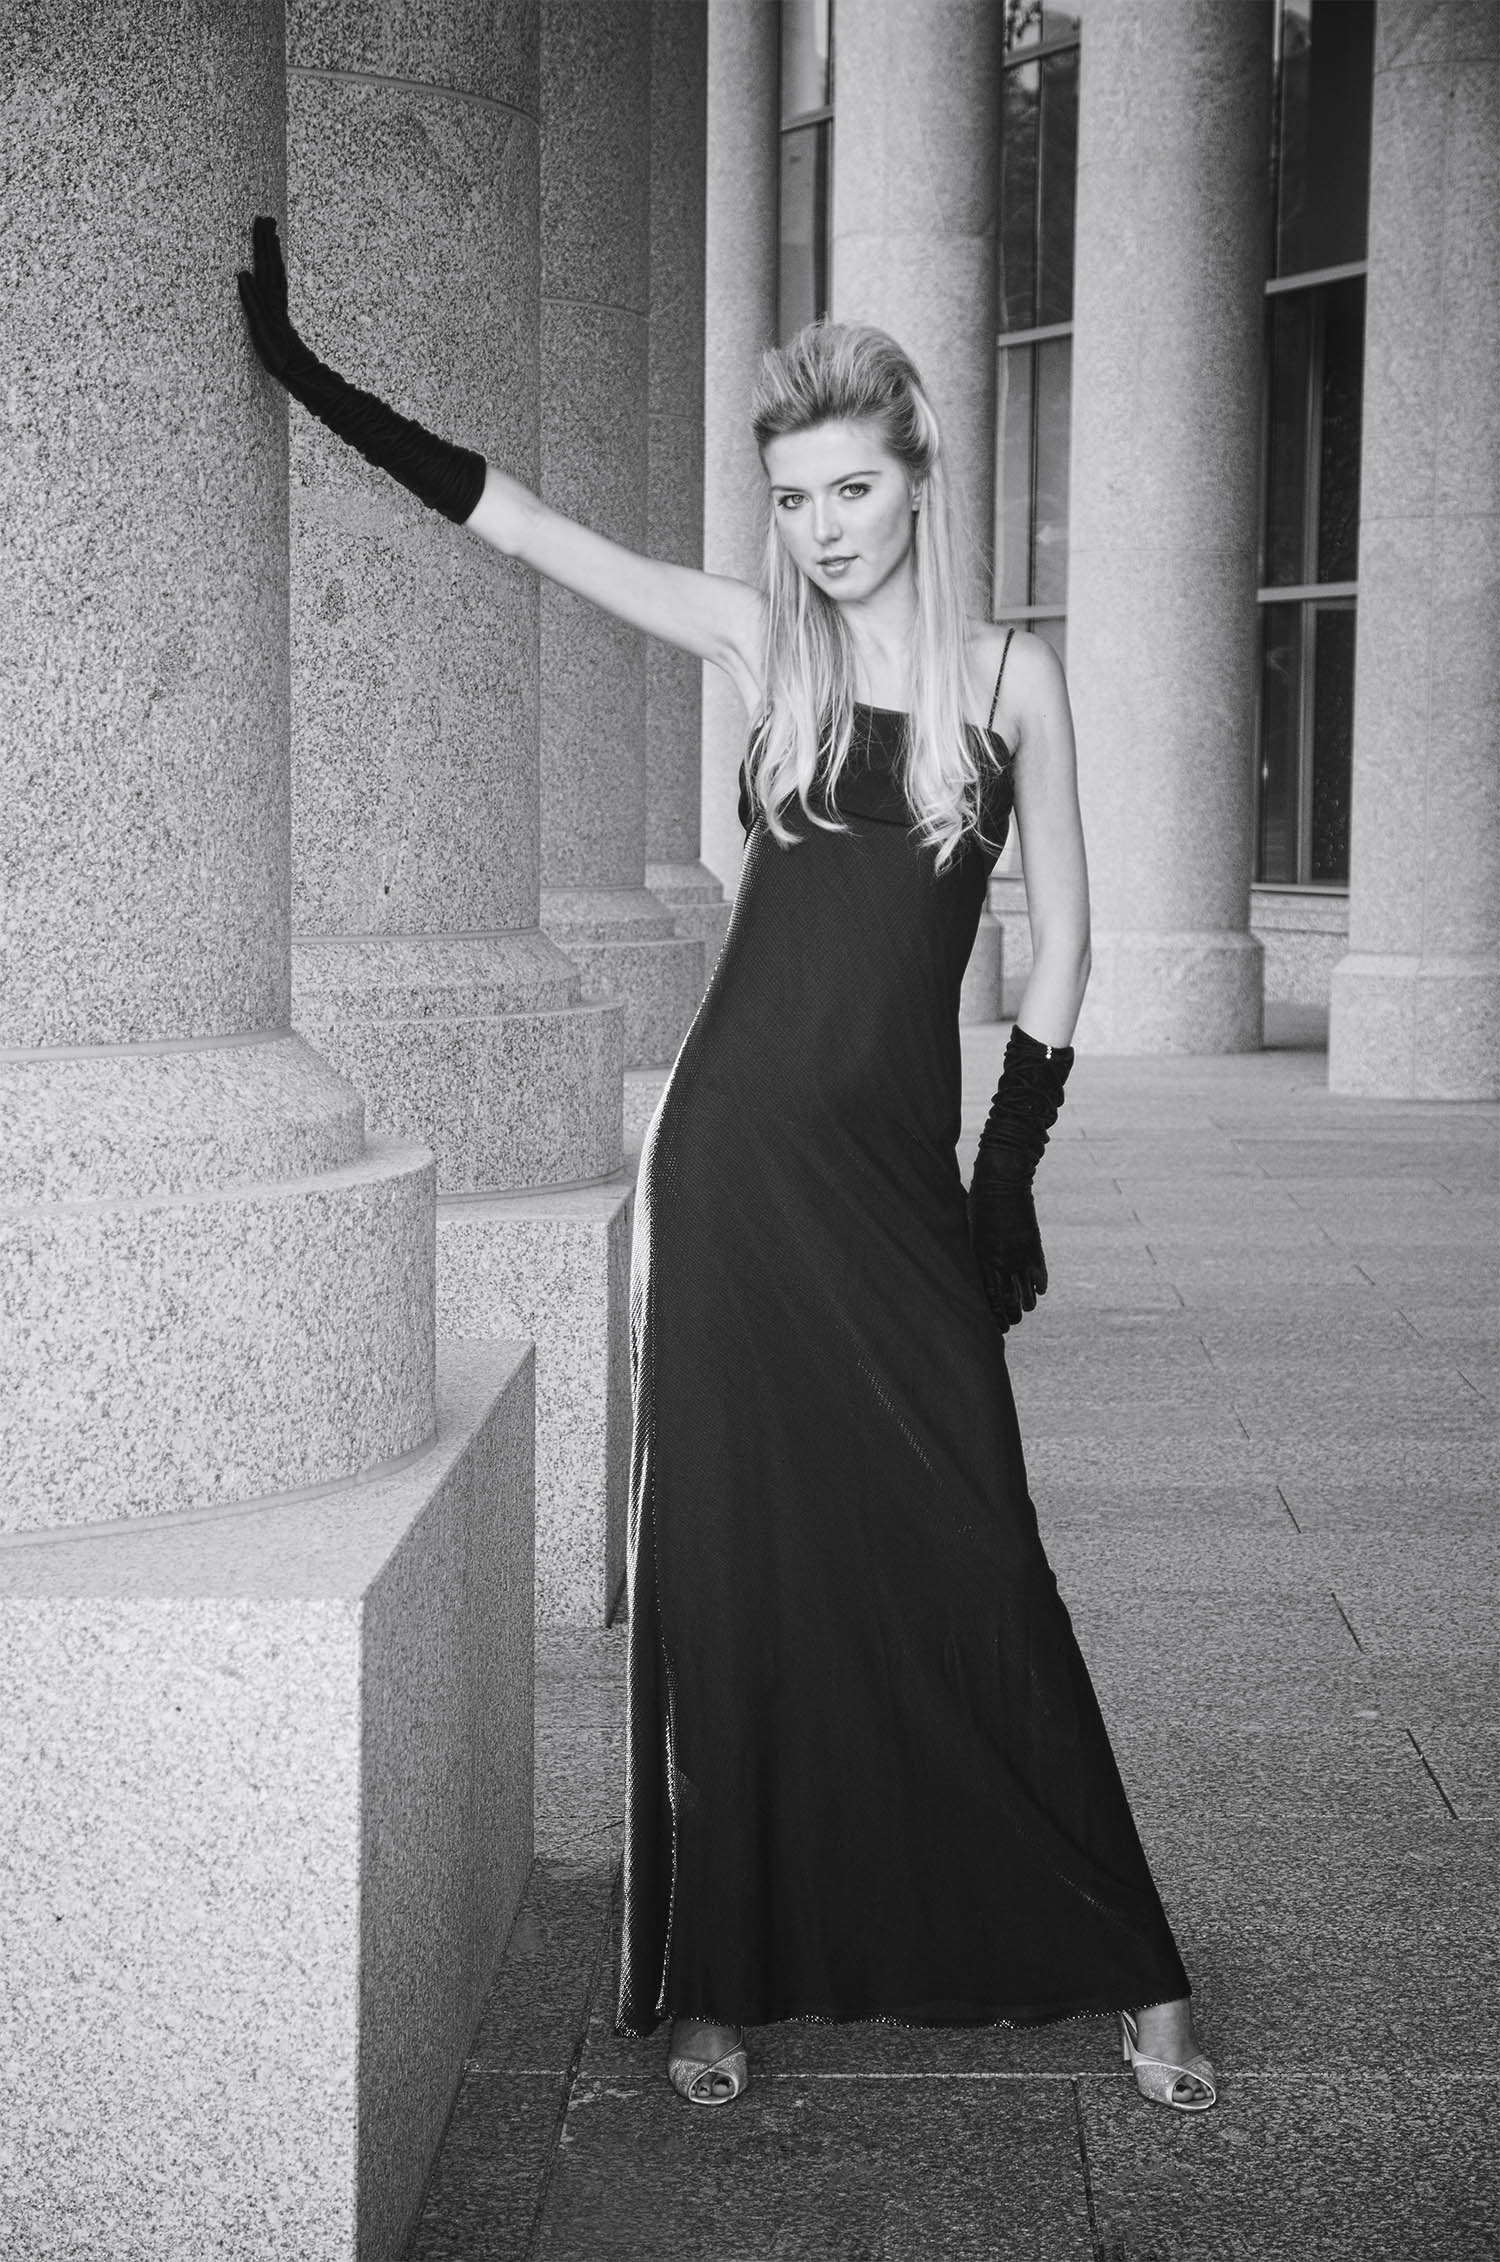 black and white classic fashion portrait of a young model. Downtown Denver, Colorado.